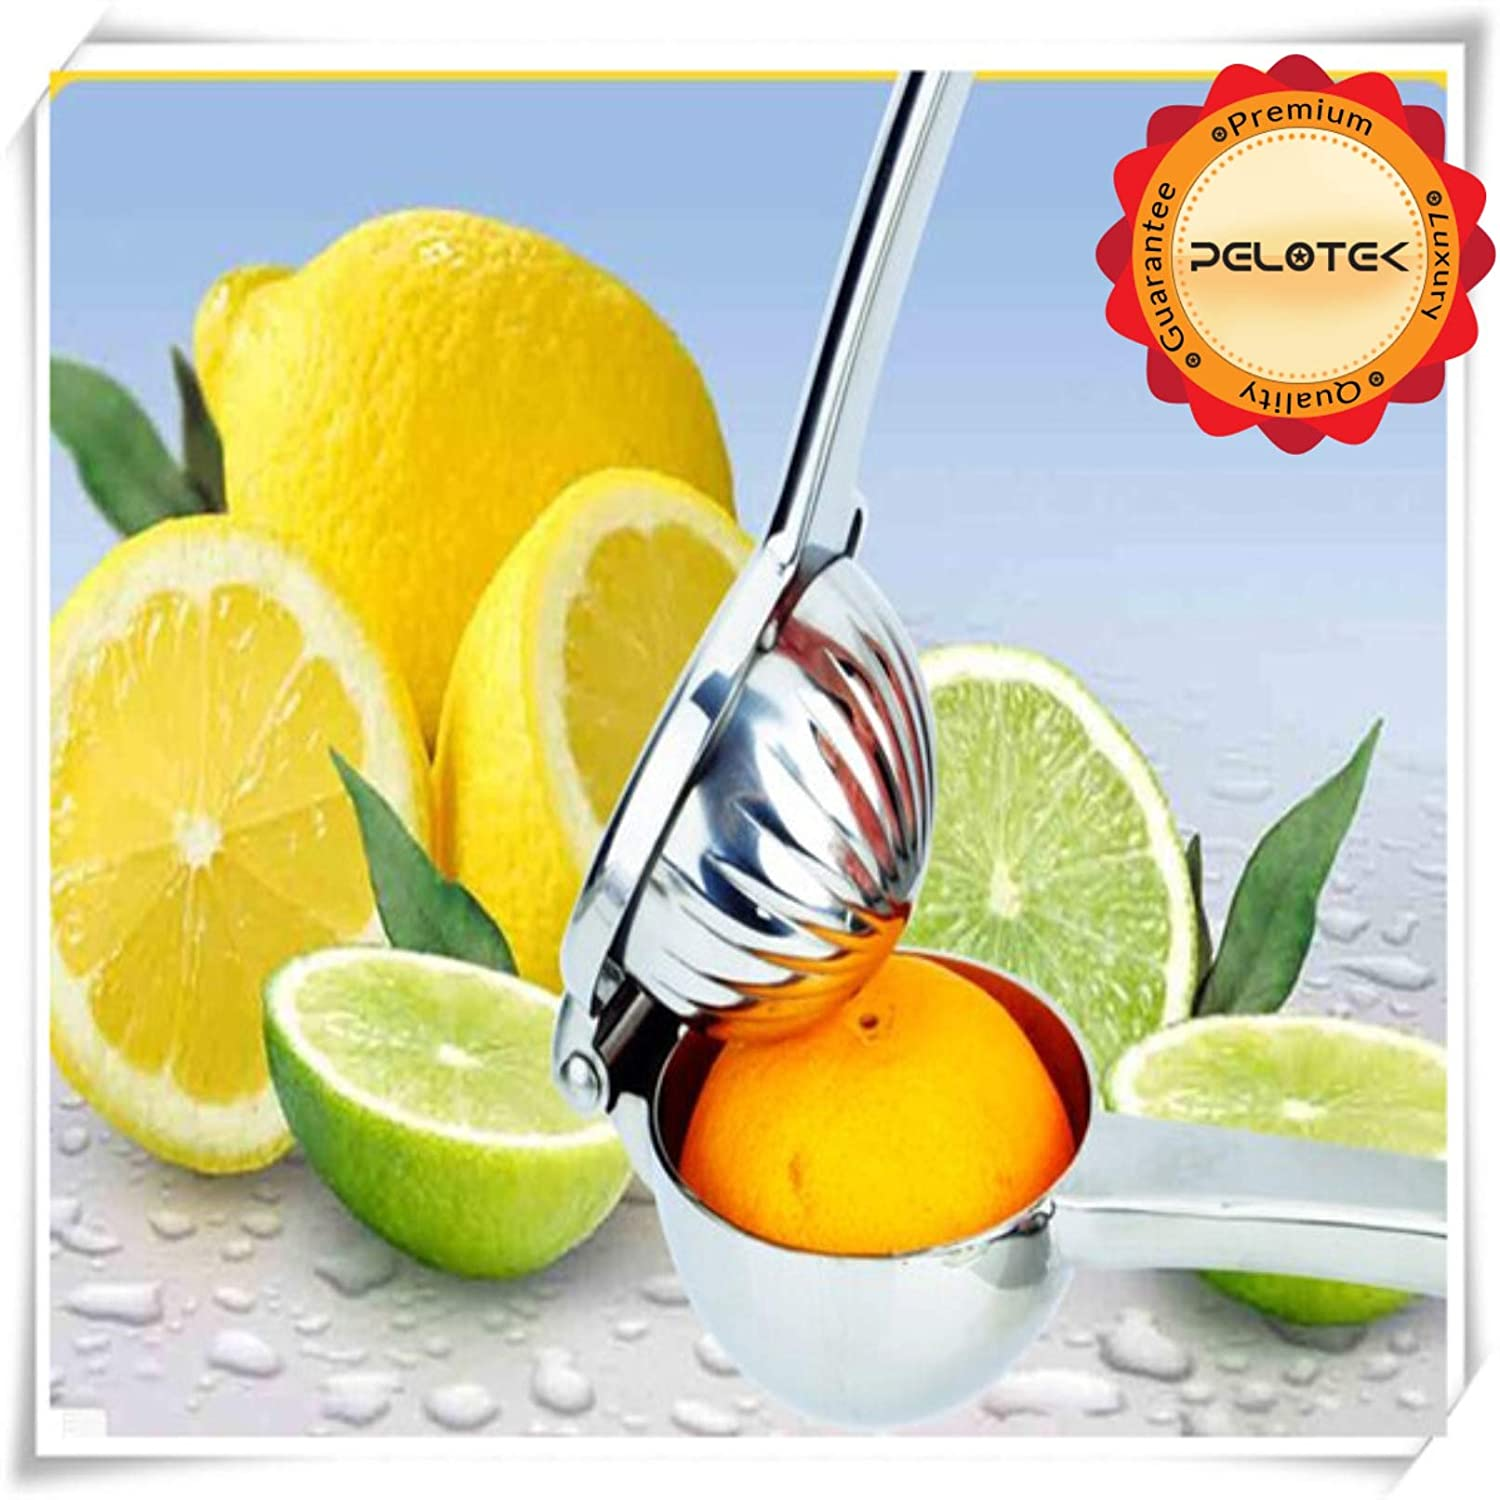 Amazon.com: Pelotek- Lemon Squeezer/Citrus Juicer/Lime Fruit Juice Presser ✮ Made With Quality 304 Stainless Steel + Extra Wide Bowl (3.45